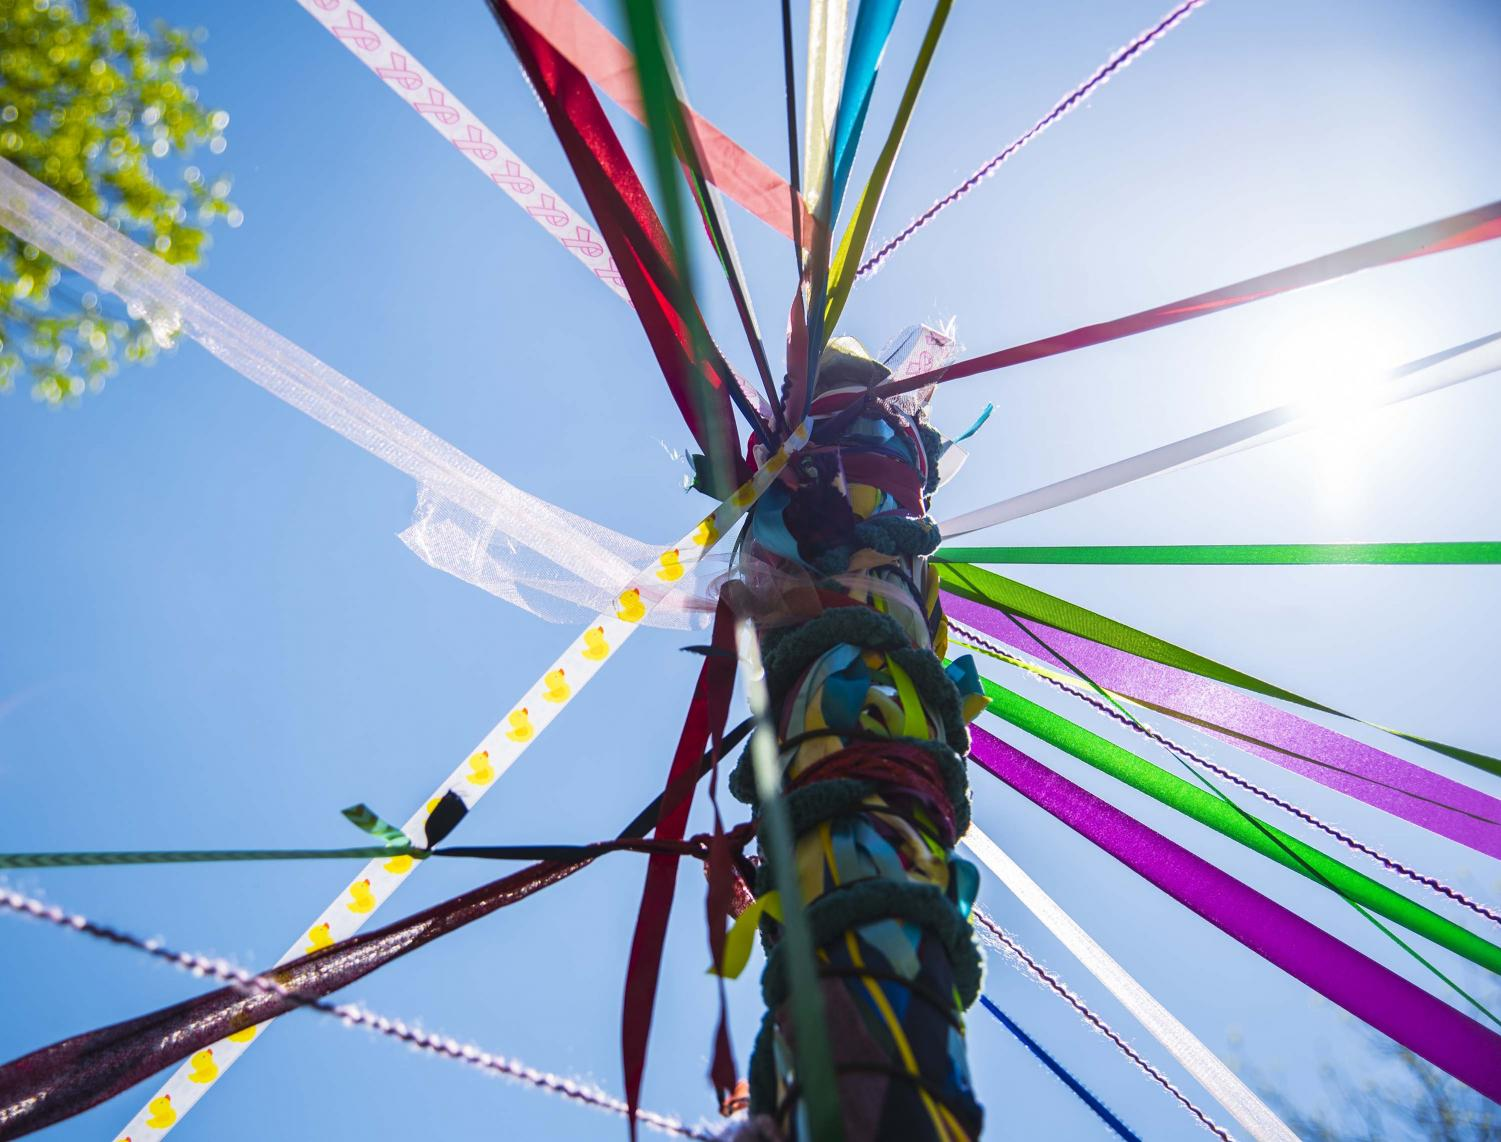 The+SIPA+Beltane+Ritual+was+held+on+April+28%2C+2019+at+Giant+City+State+Park.+Tara+Nelsen%2C+who+was+in+charge+of+the+event%2C+said%2C+%E2%80%9CThe+sacred+ritual+was+to+represent+fertility+and+growth+in+life.+It%E2%80%99s+about+abundance+and+being+happy.%E2%80%9D+